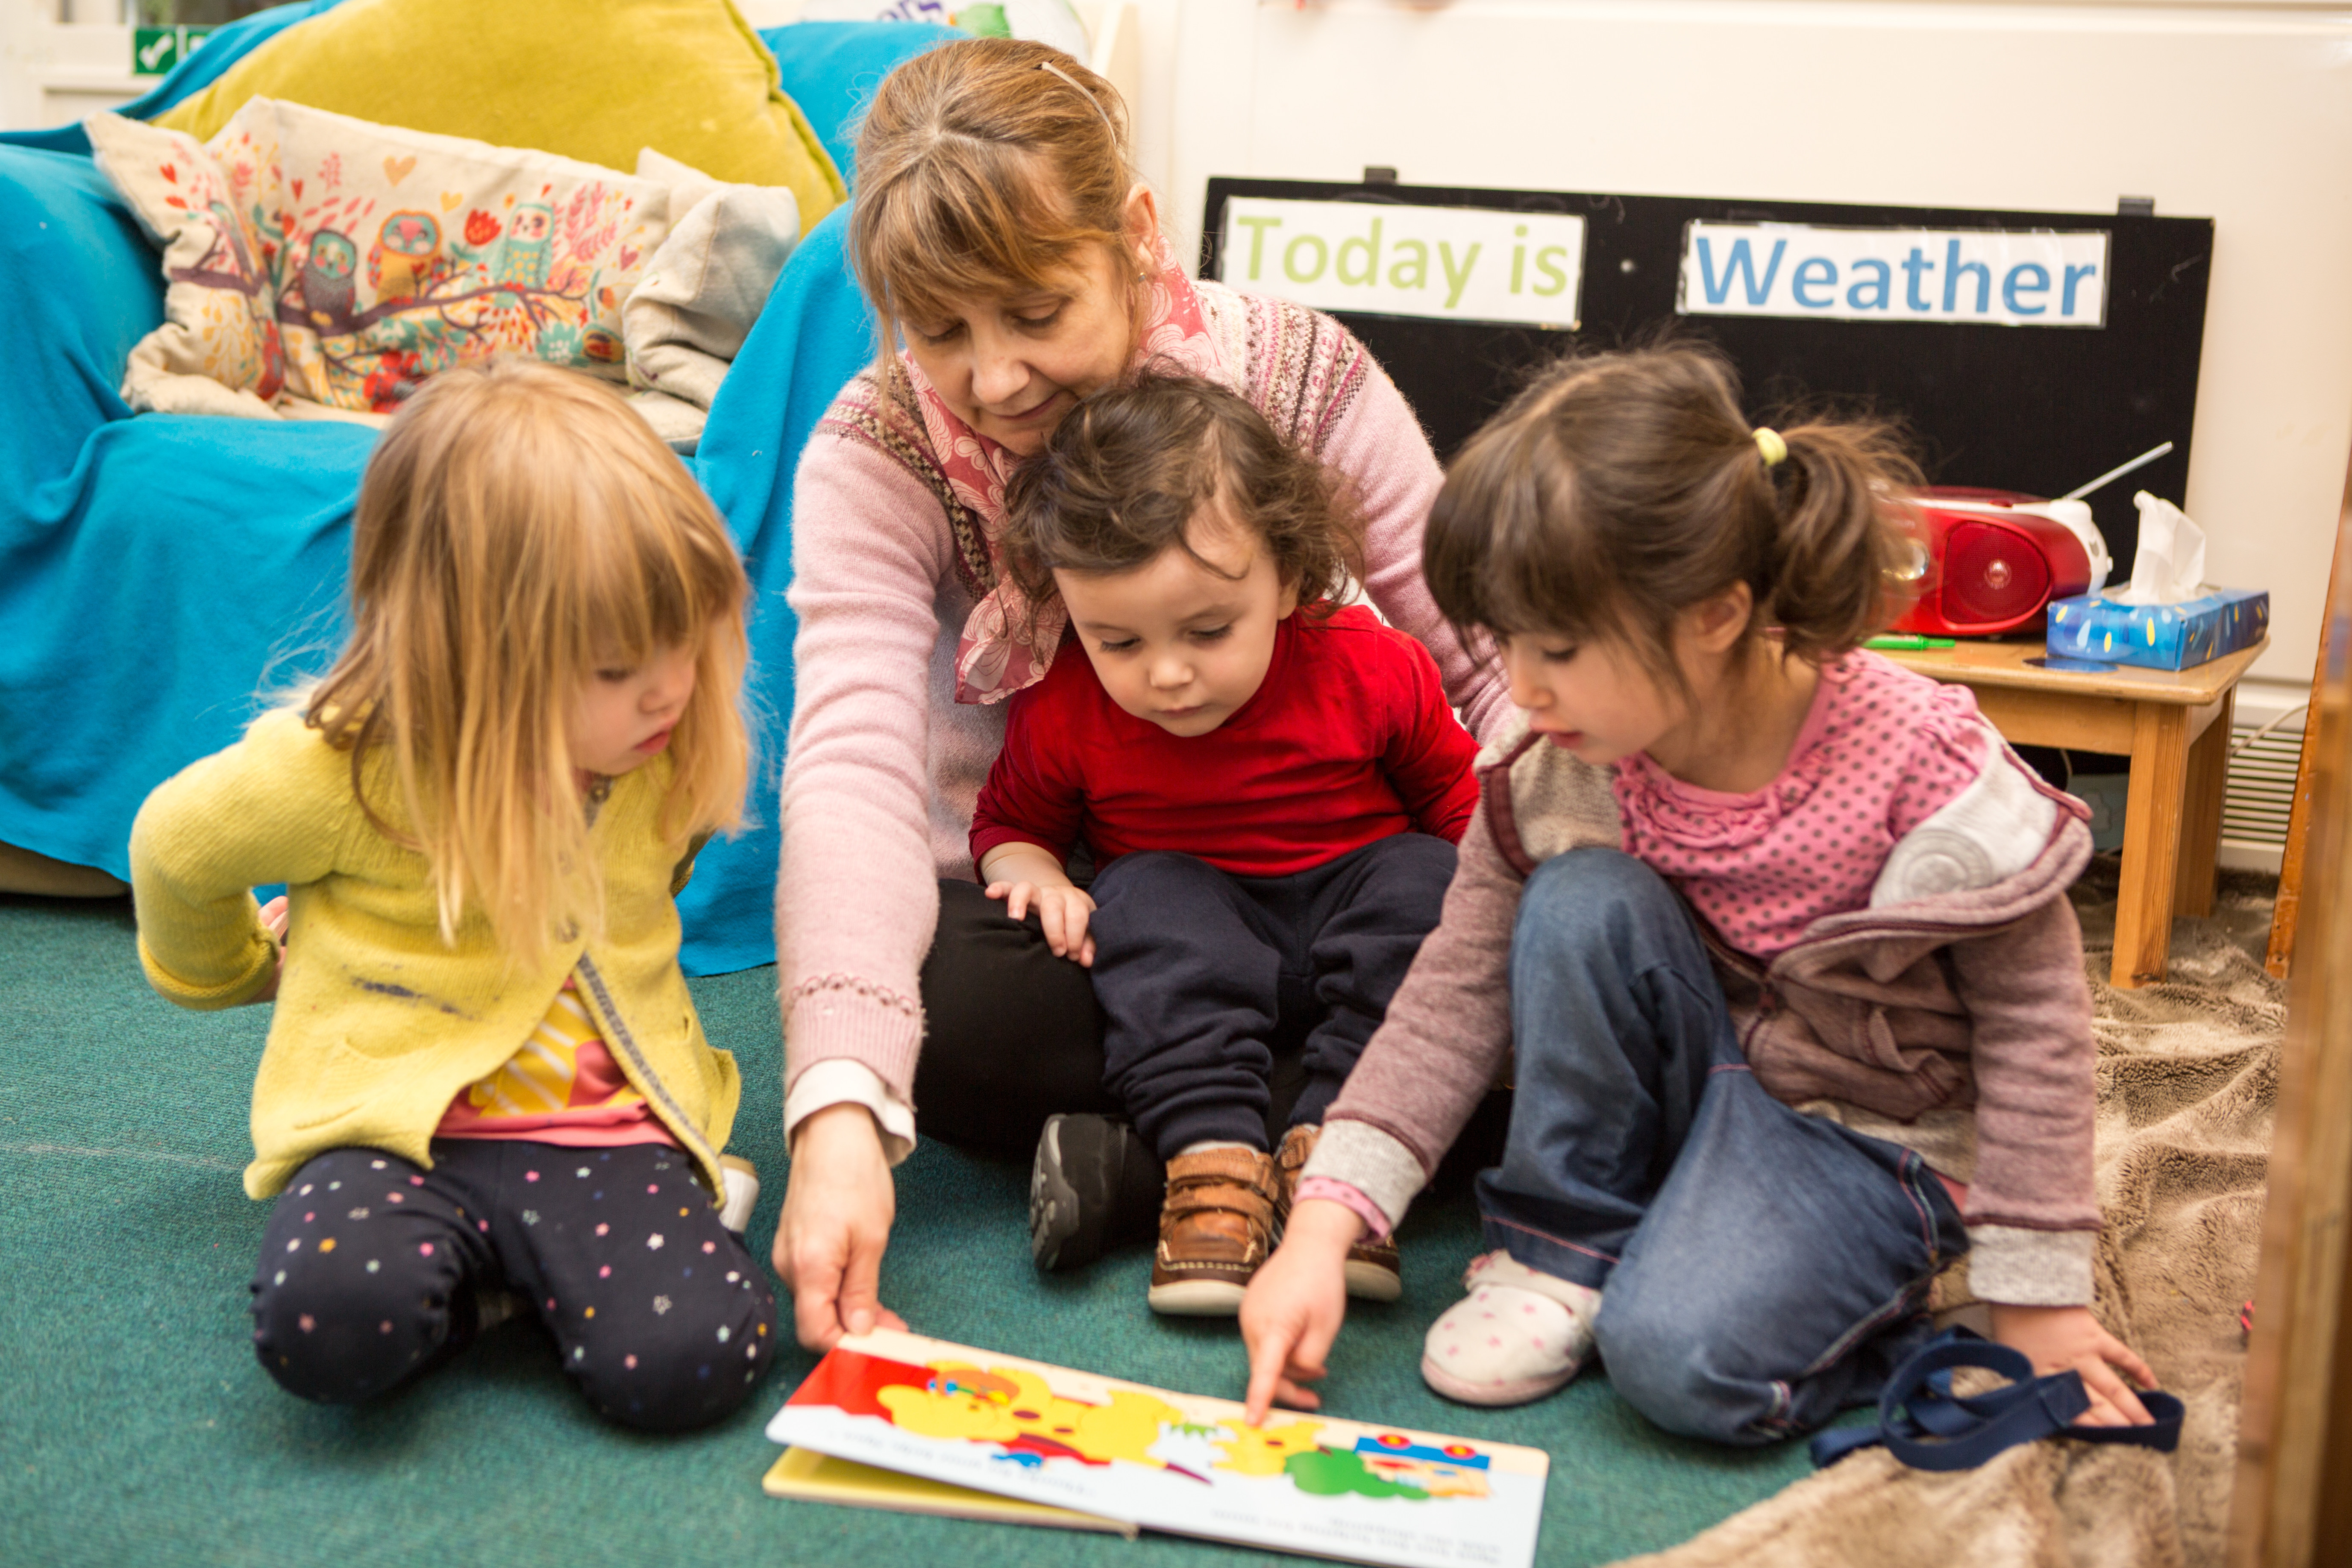 Three small children sitting on the floor pointing and talking about a book with their teacher